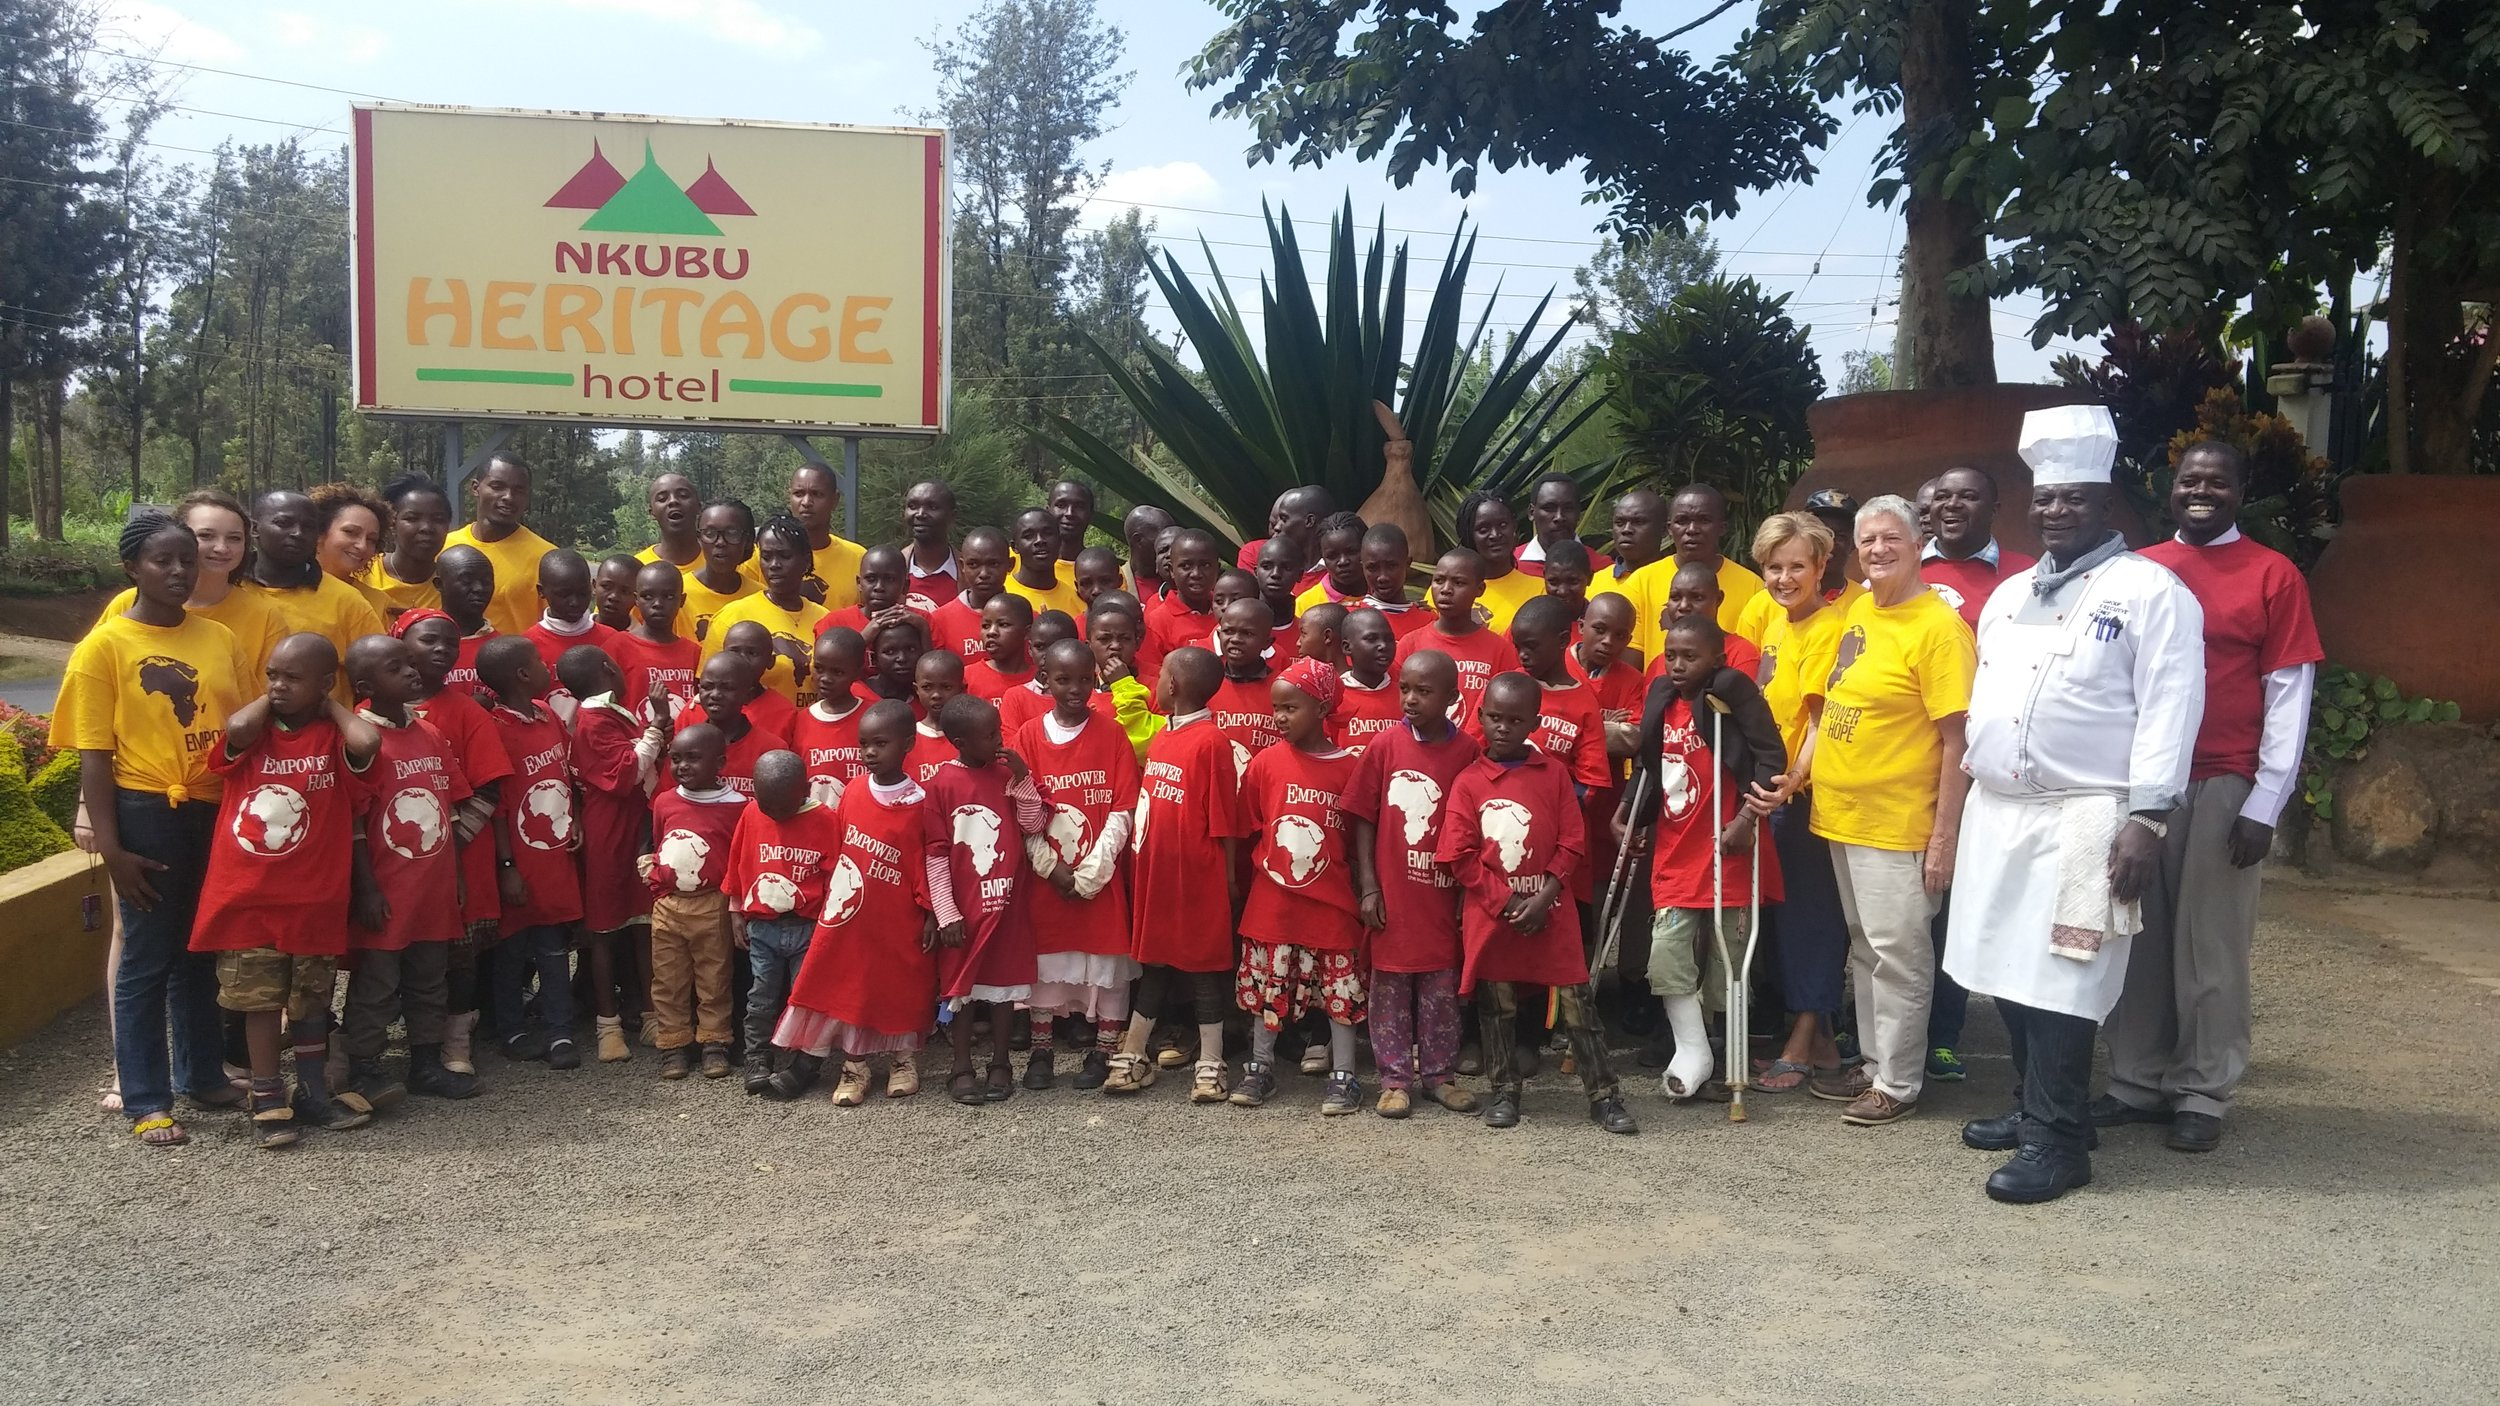 Nkubu Heritage Hotel partners with Empower Hope to bring this event to the children of Acts of Mercy Center